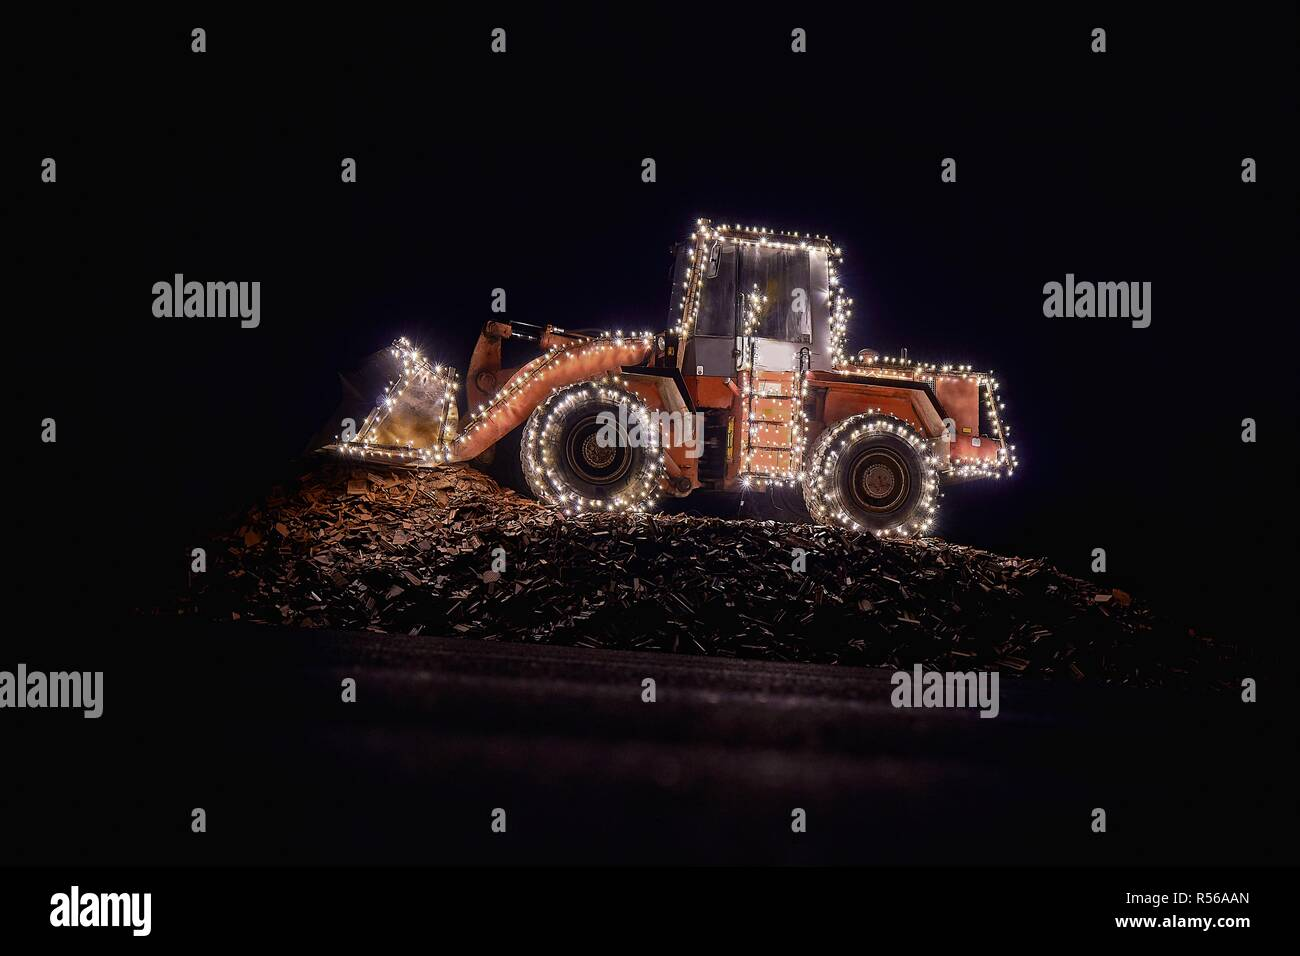 Blurred wheel loader decorated with lights Stock Photo